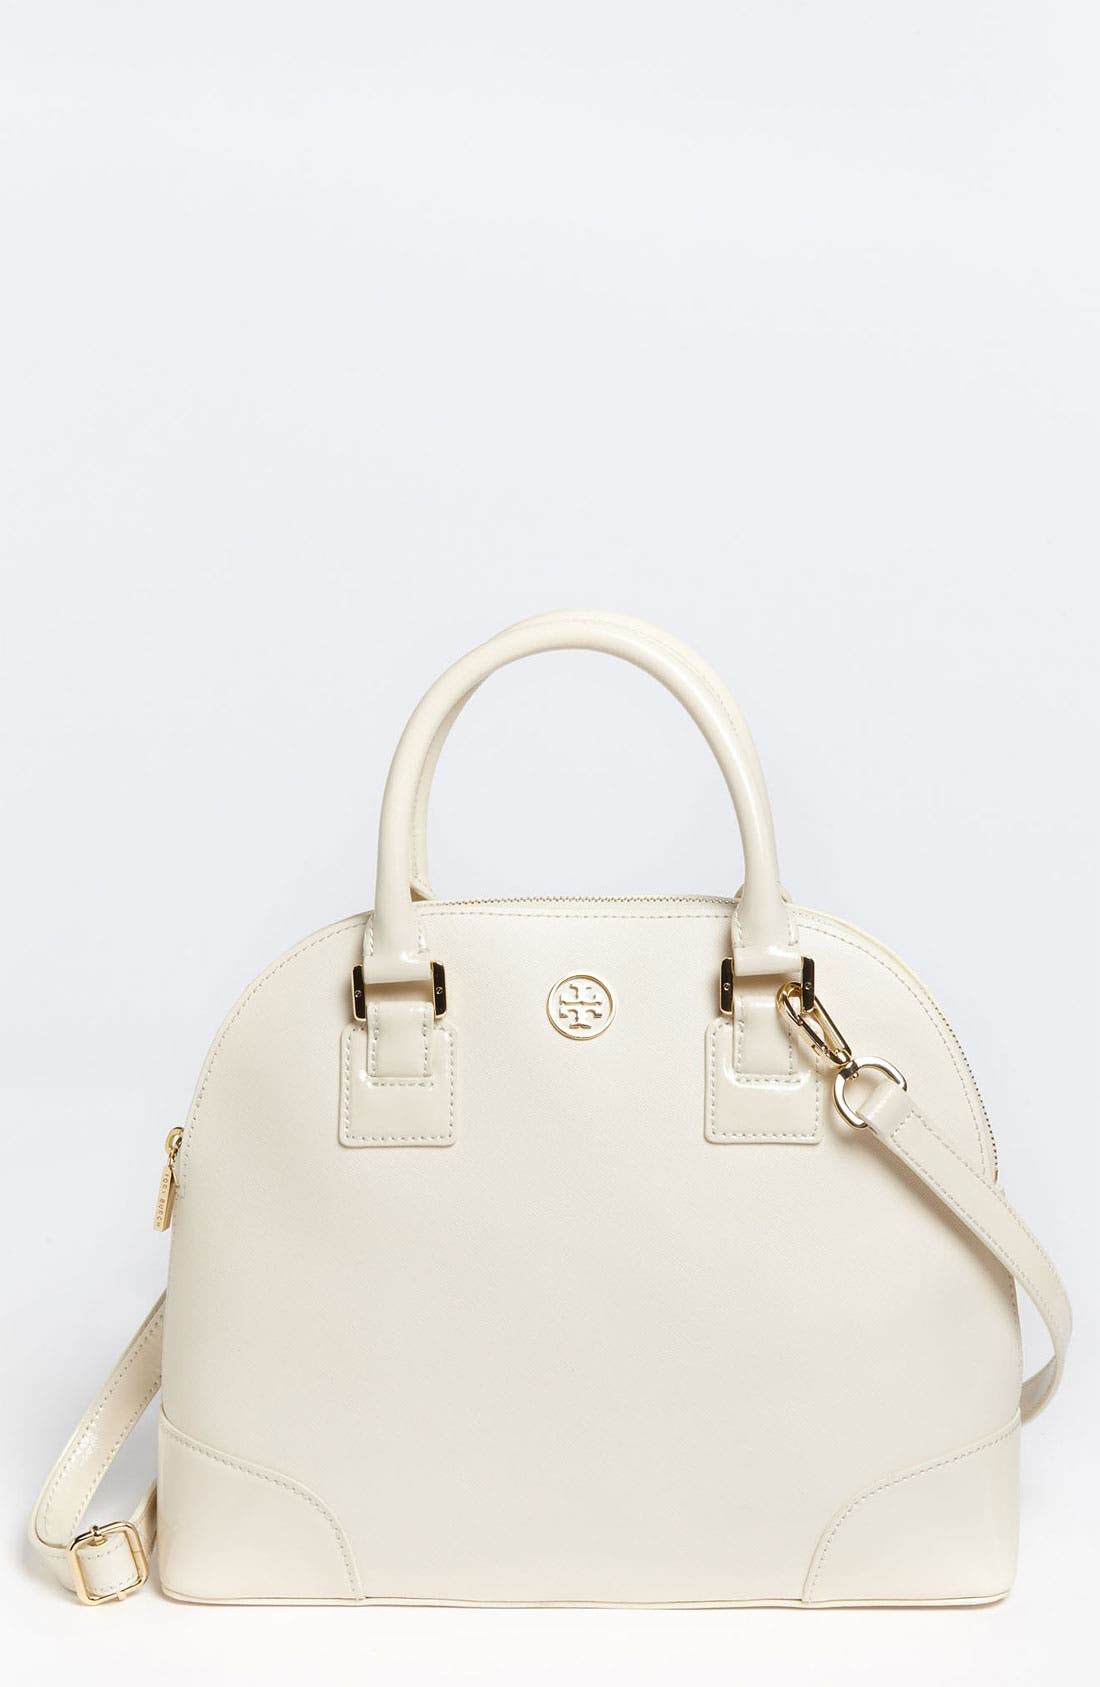 Main Image - Tory Burch 'Robinson - Small' Saffiano Leather Dome Satchel